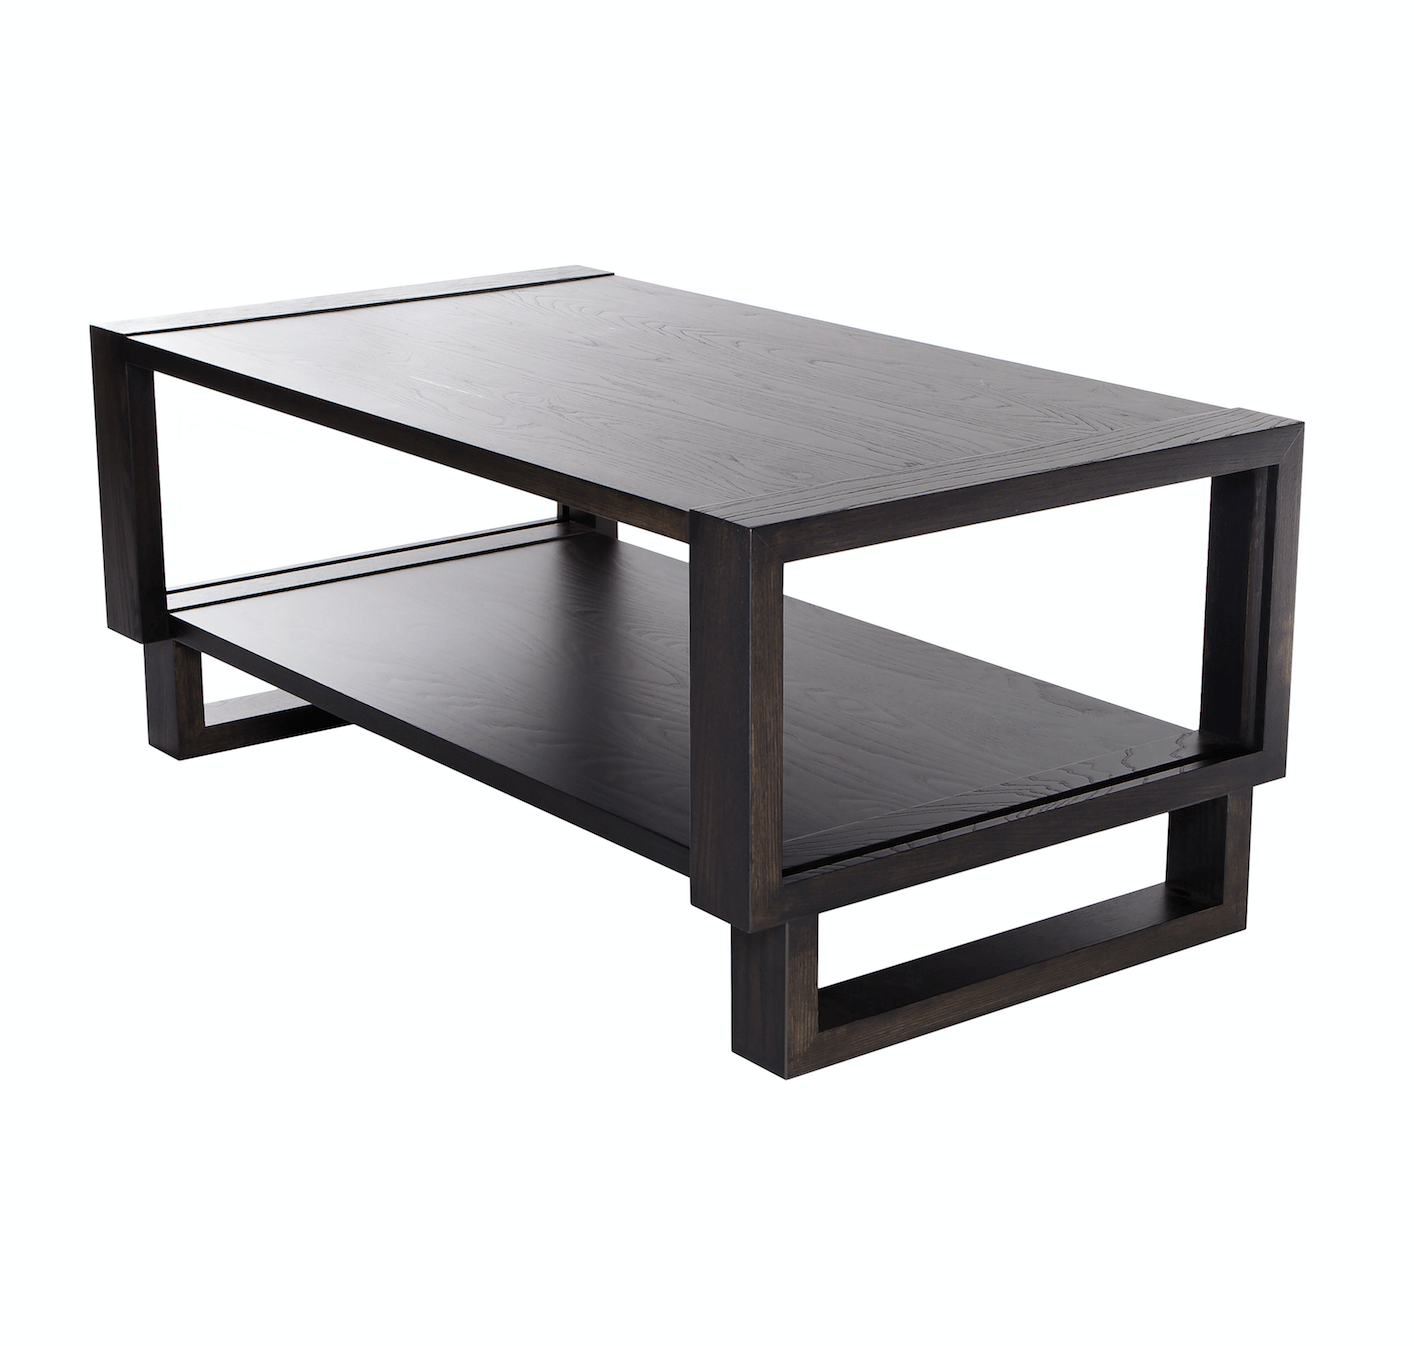 Hugh Acton Mid Century Modern Coffee Table For Sale At 1stdibs